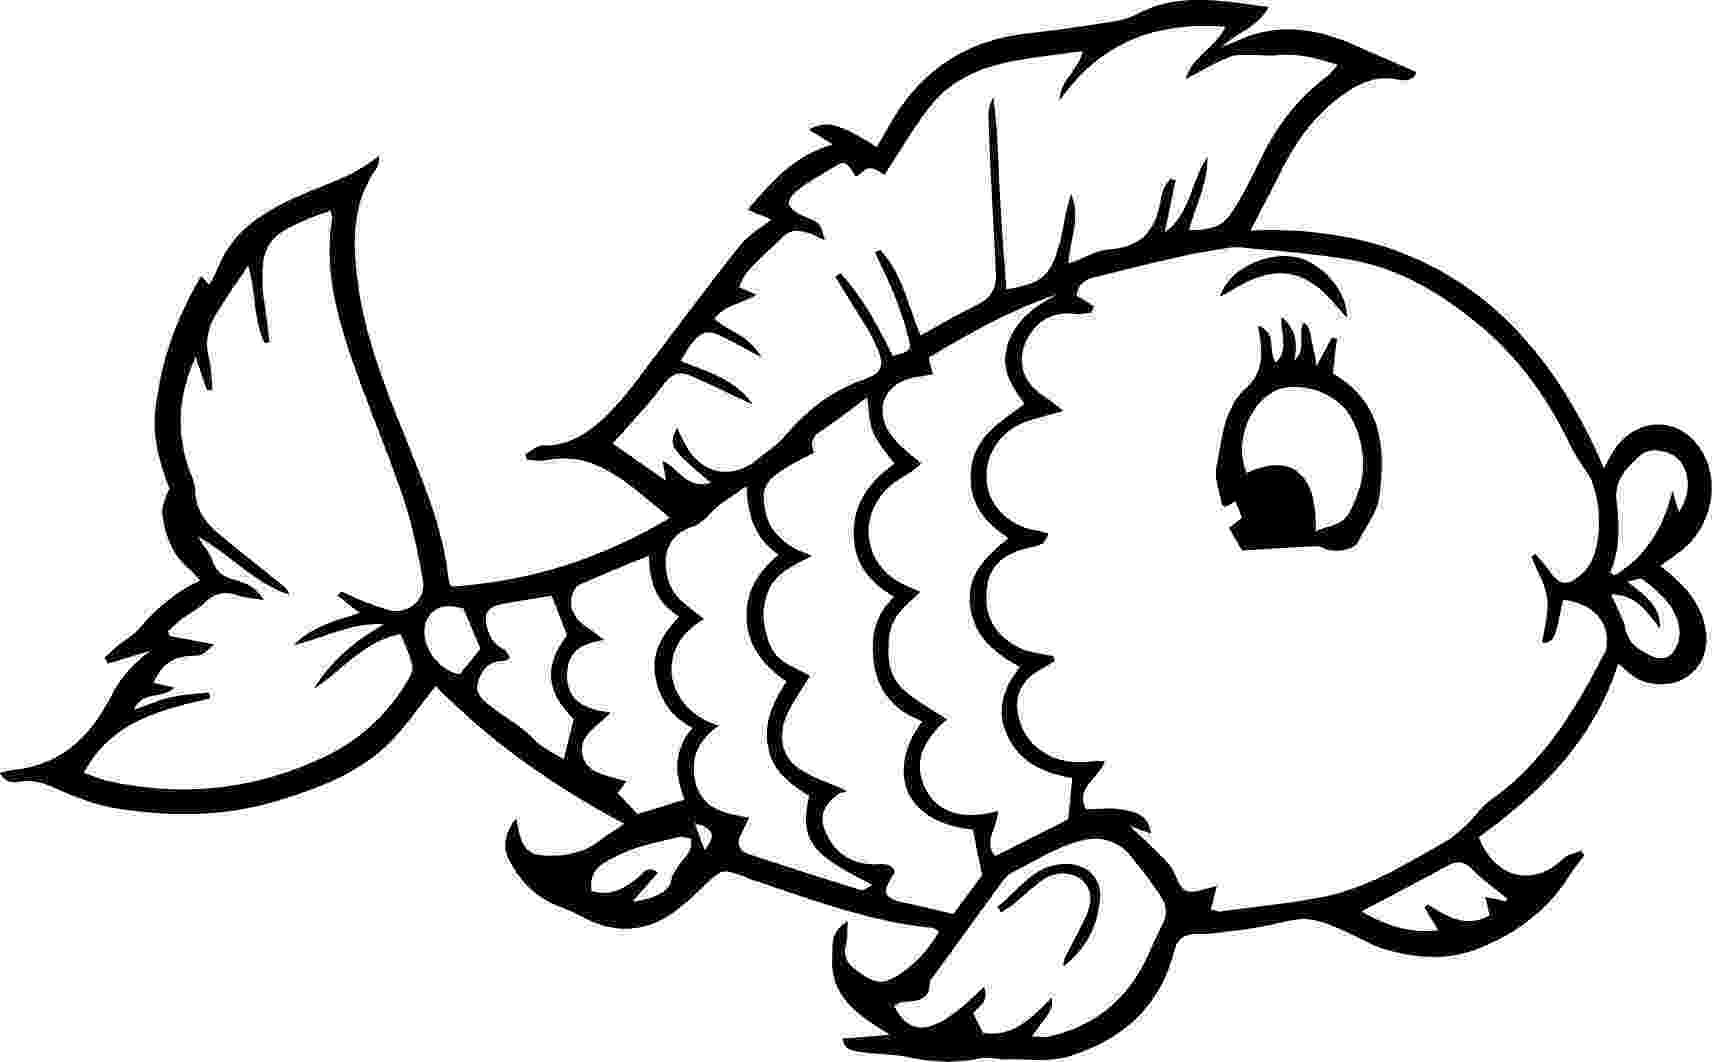 fish colouring images print download cute and educative fish coloring pages colouring fish images